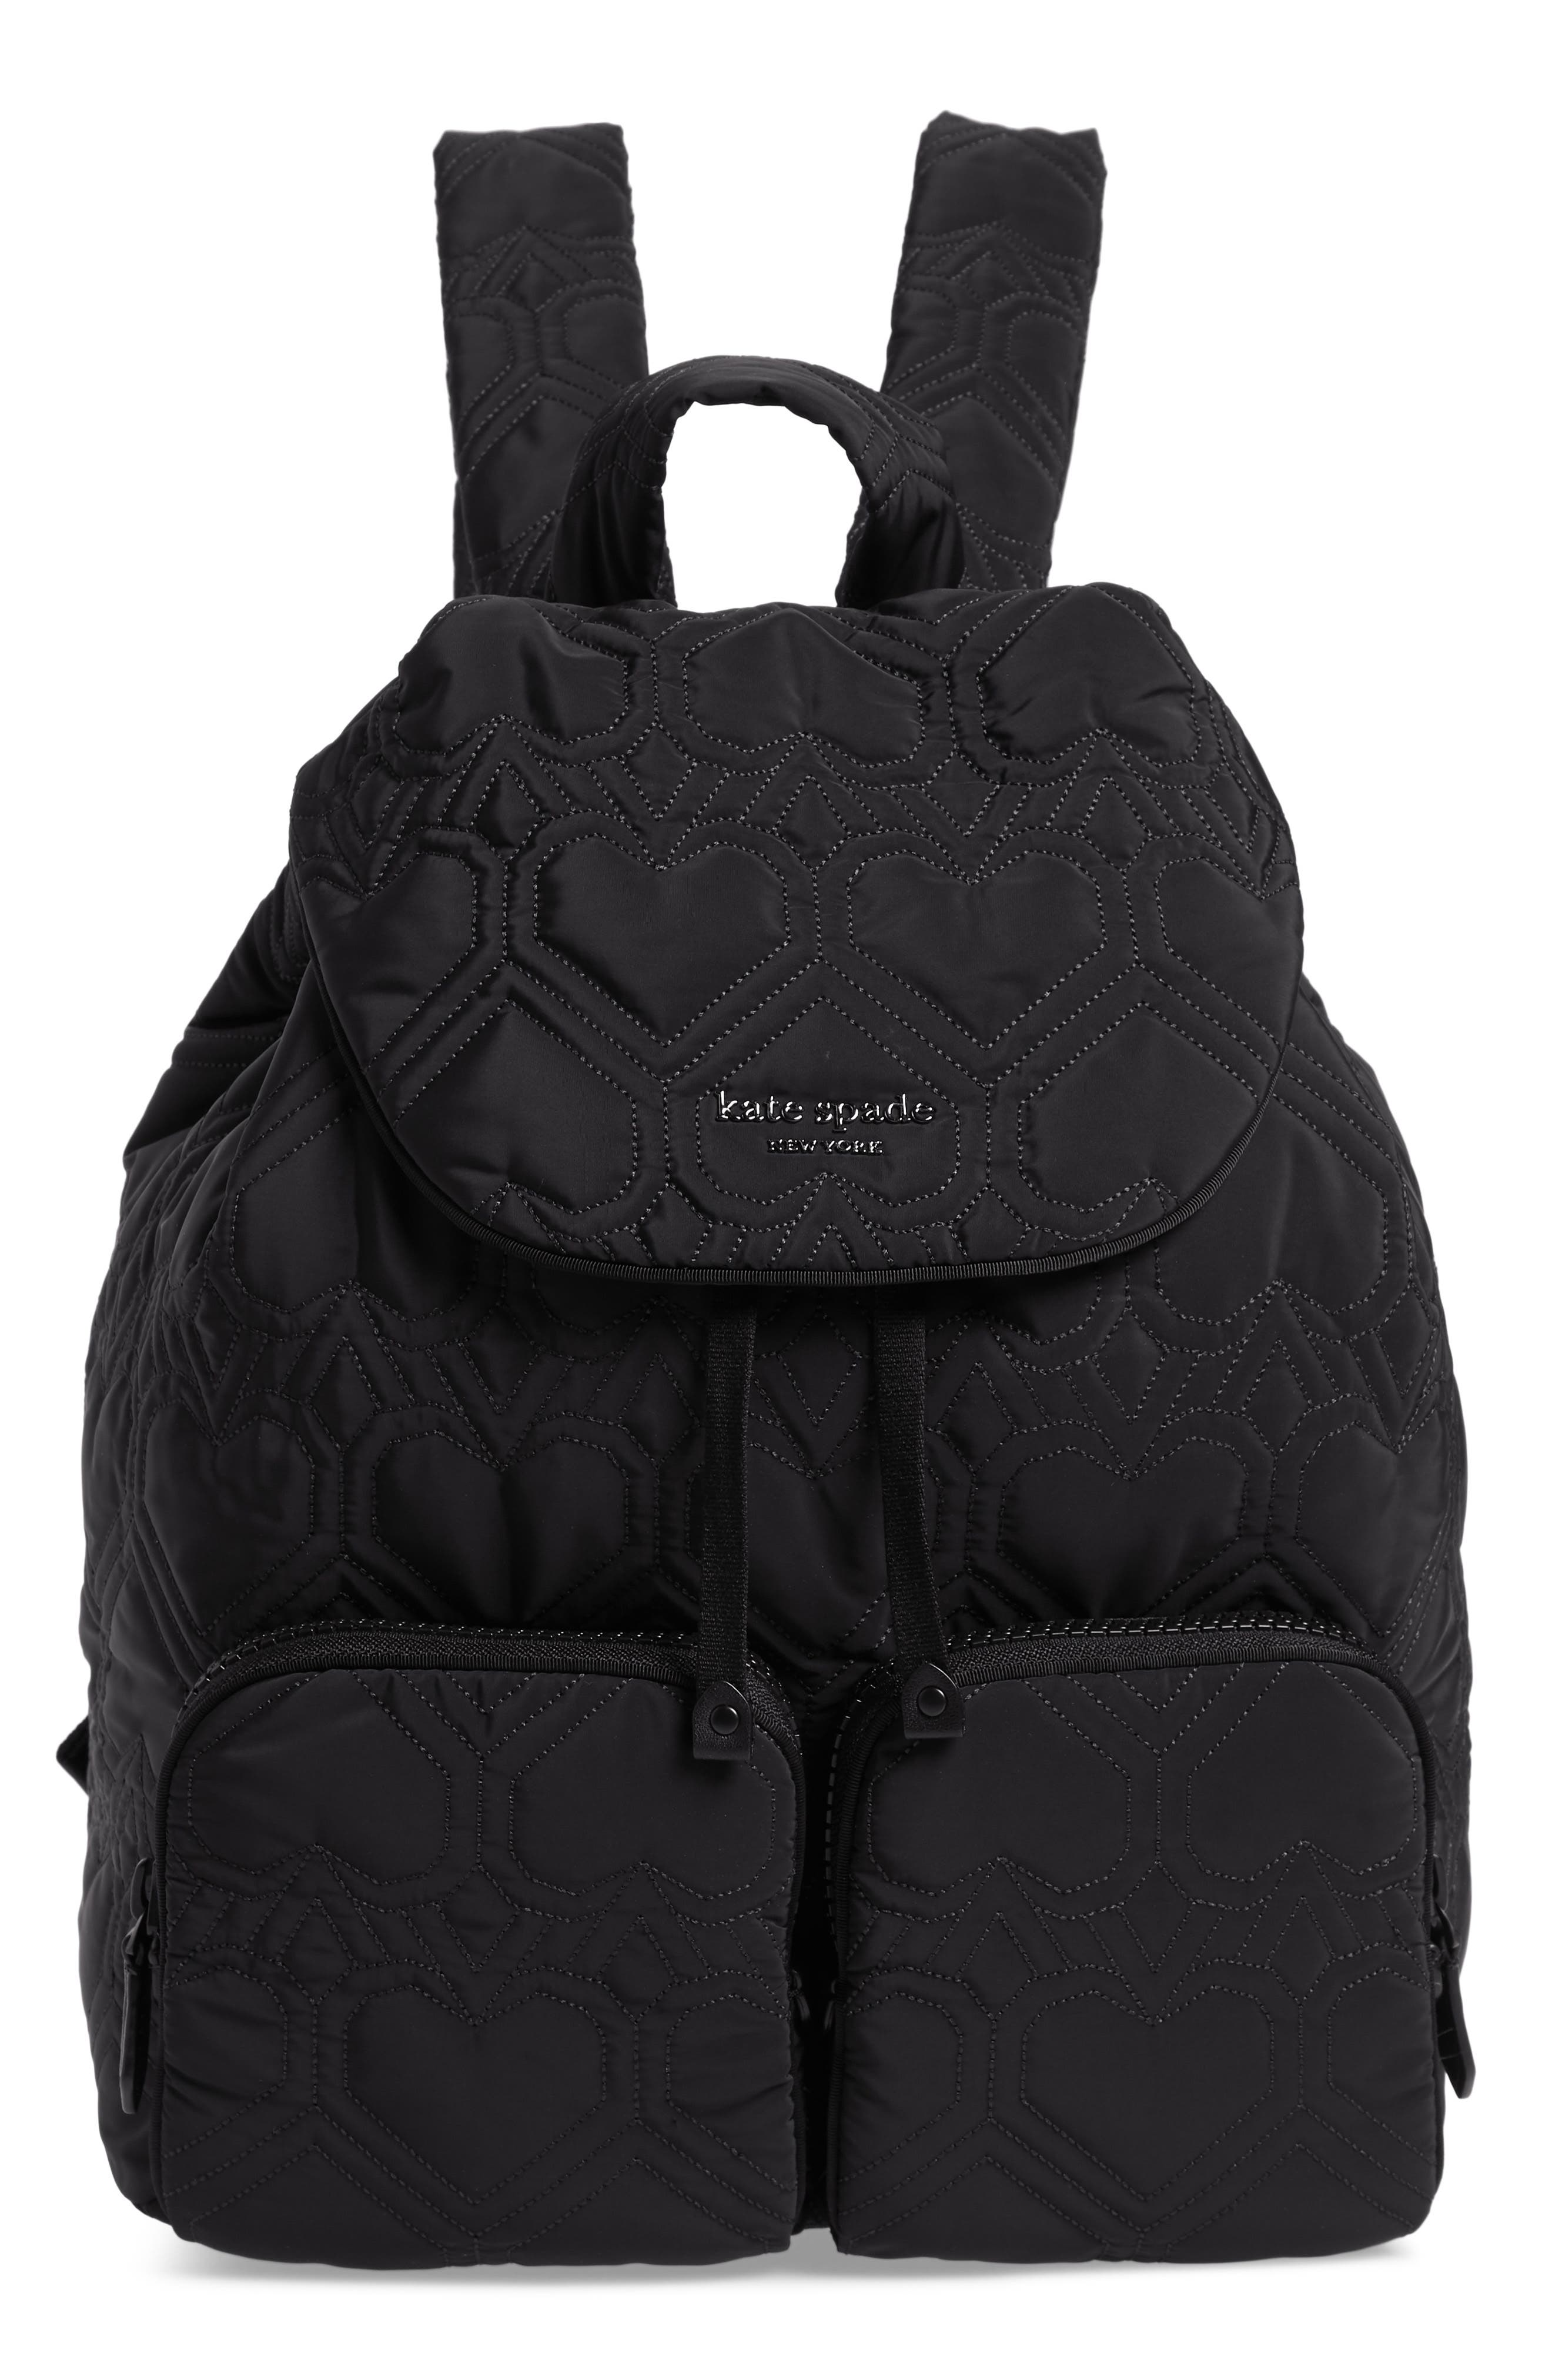 KATE SPADE NEW YORK, large jayne quilted nylon backpack, Main thumbnail 1, color, BLACK